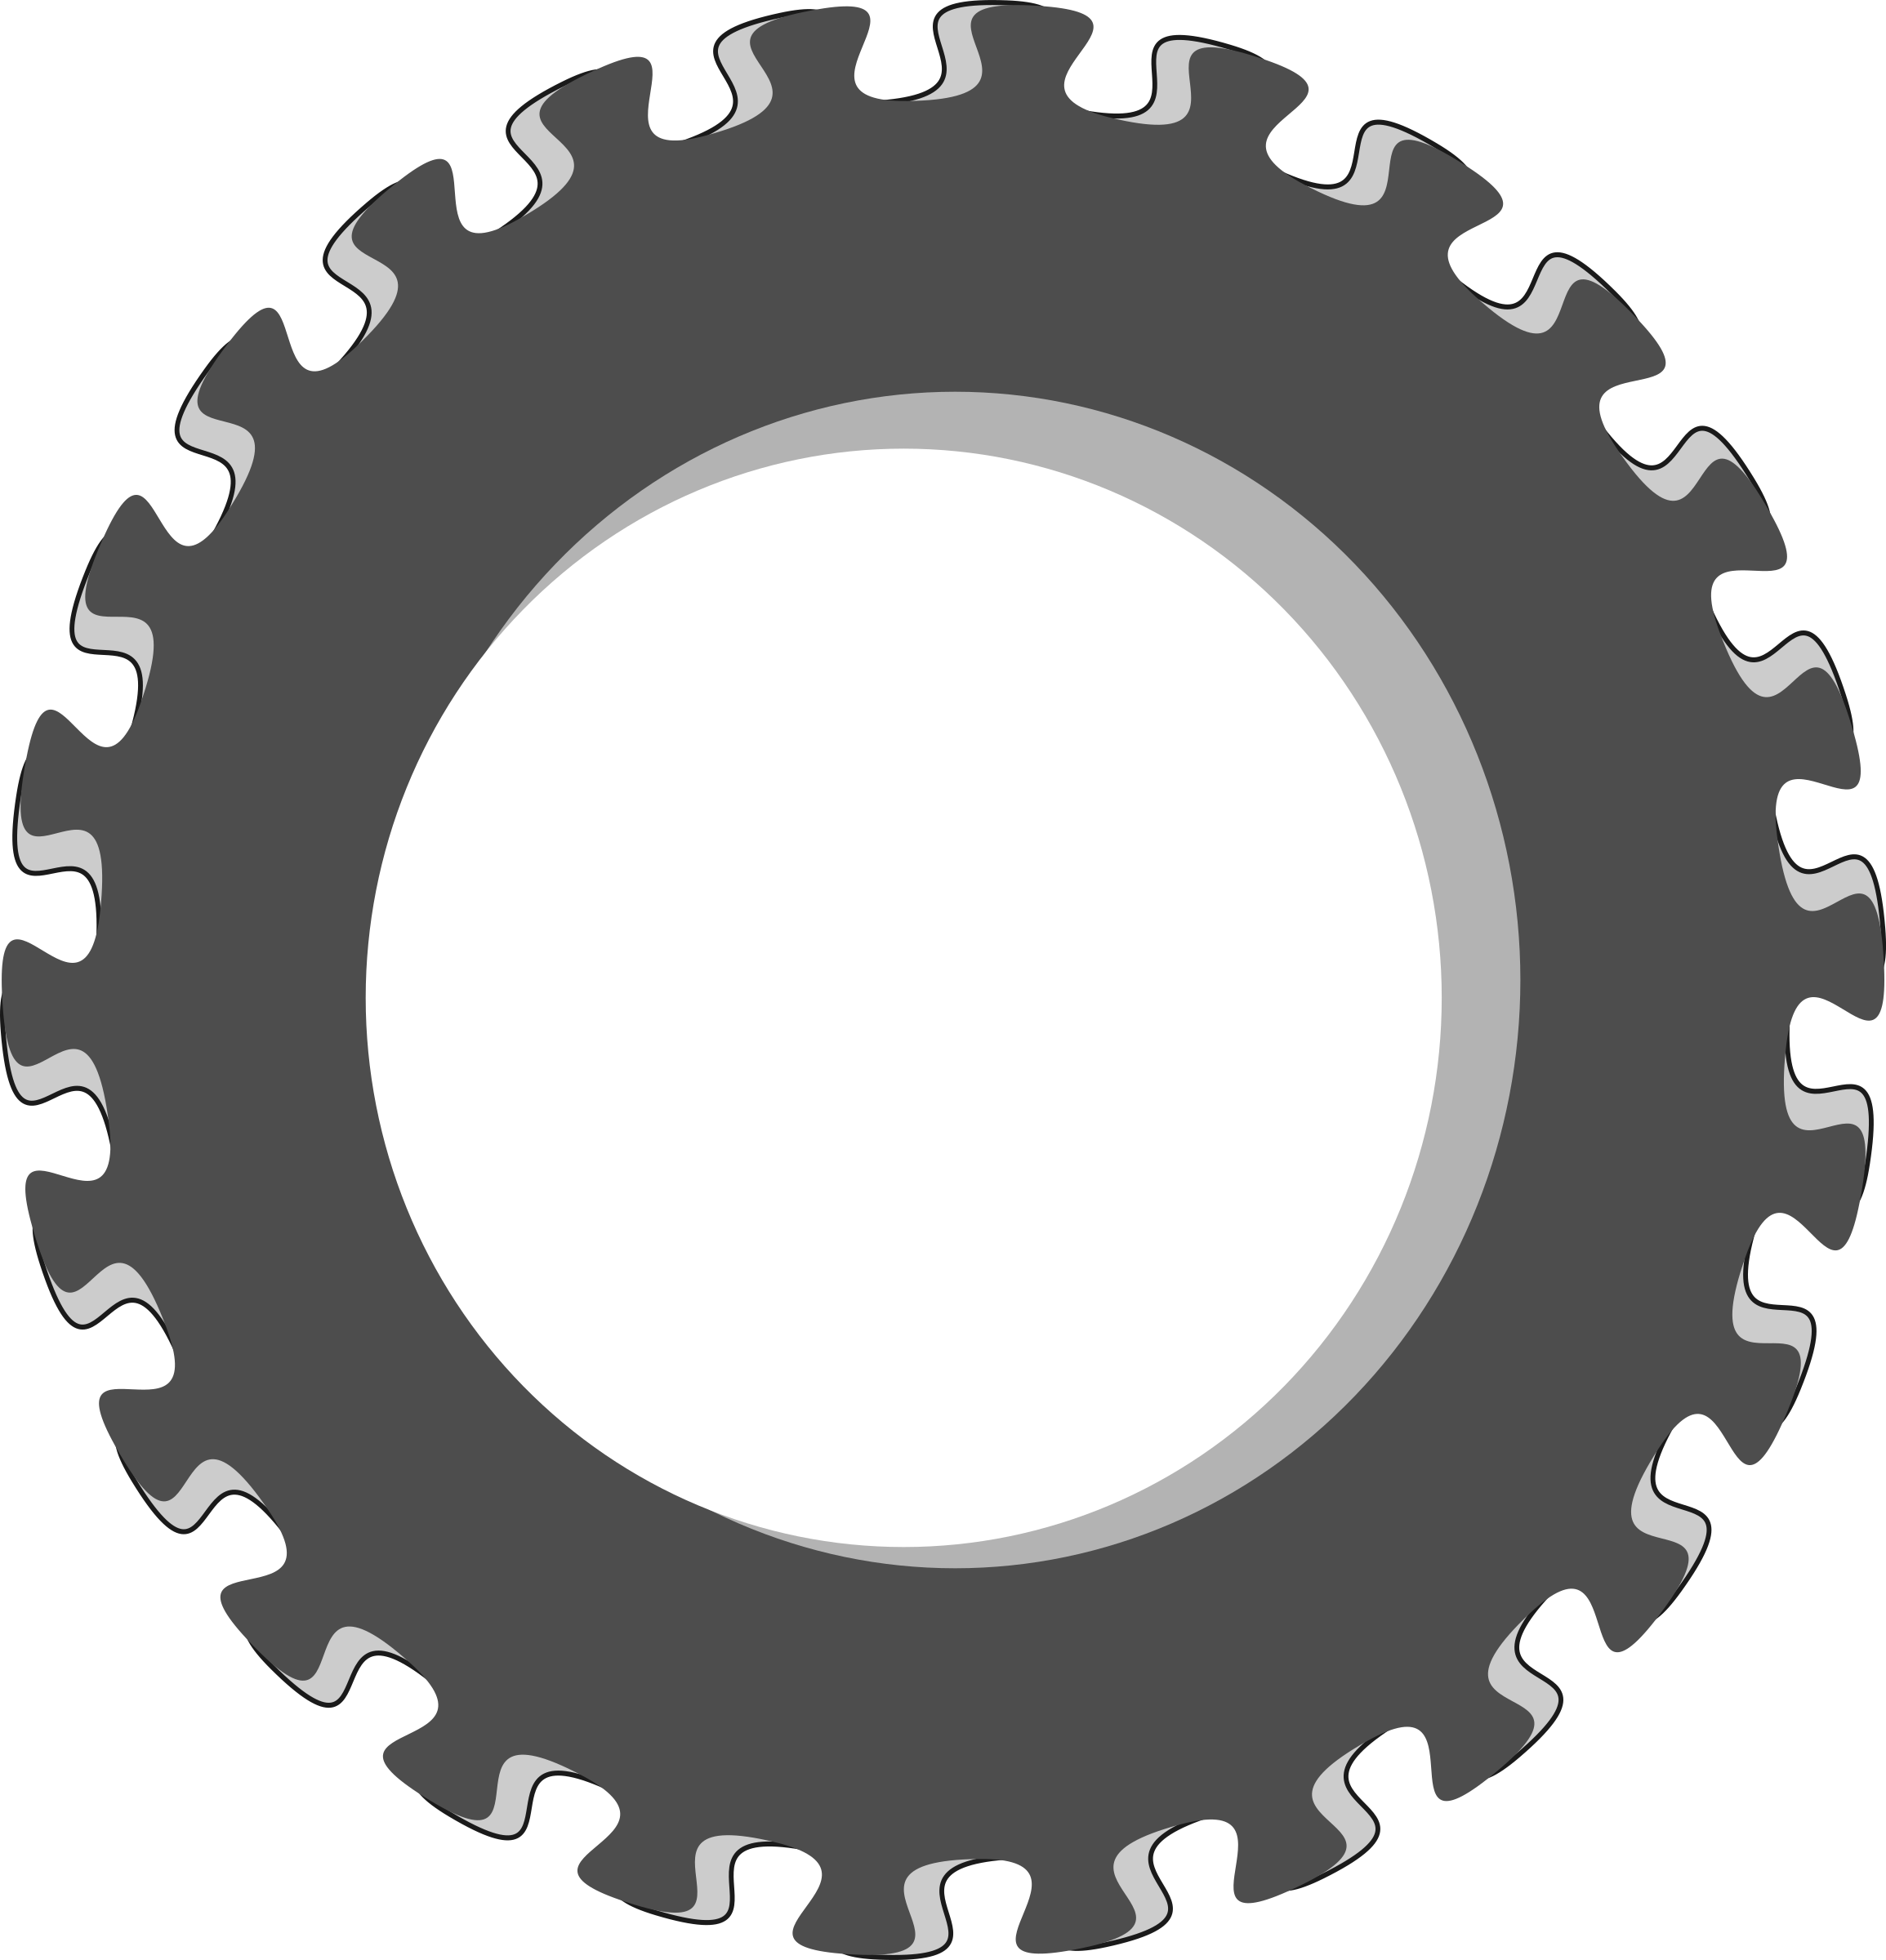 Fancy Gear wheel by gsagri04